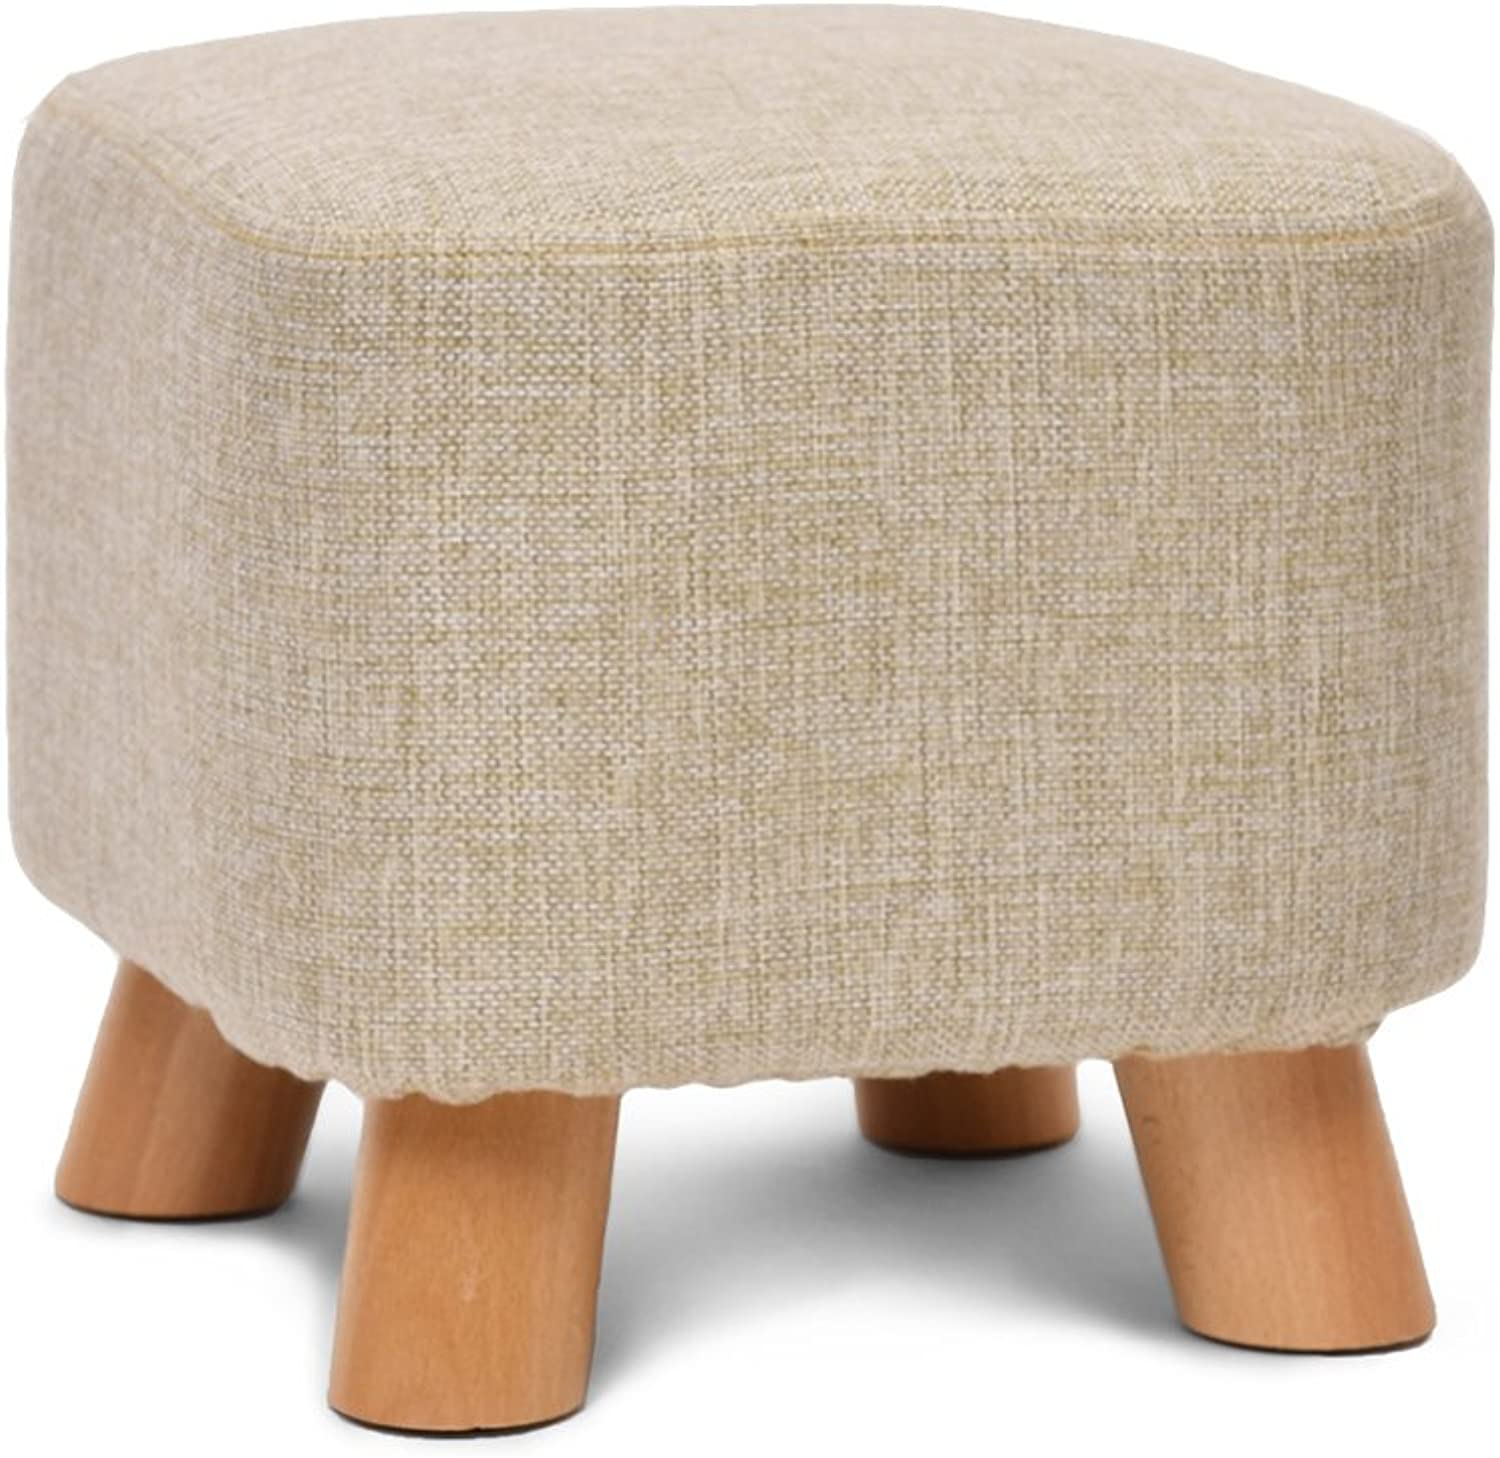 European Chair Solid Wood shoes Bench, Creative Square Stool Fabric Stool Sofa Bench Coffee Table Bench Home Stool (color   B)